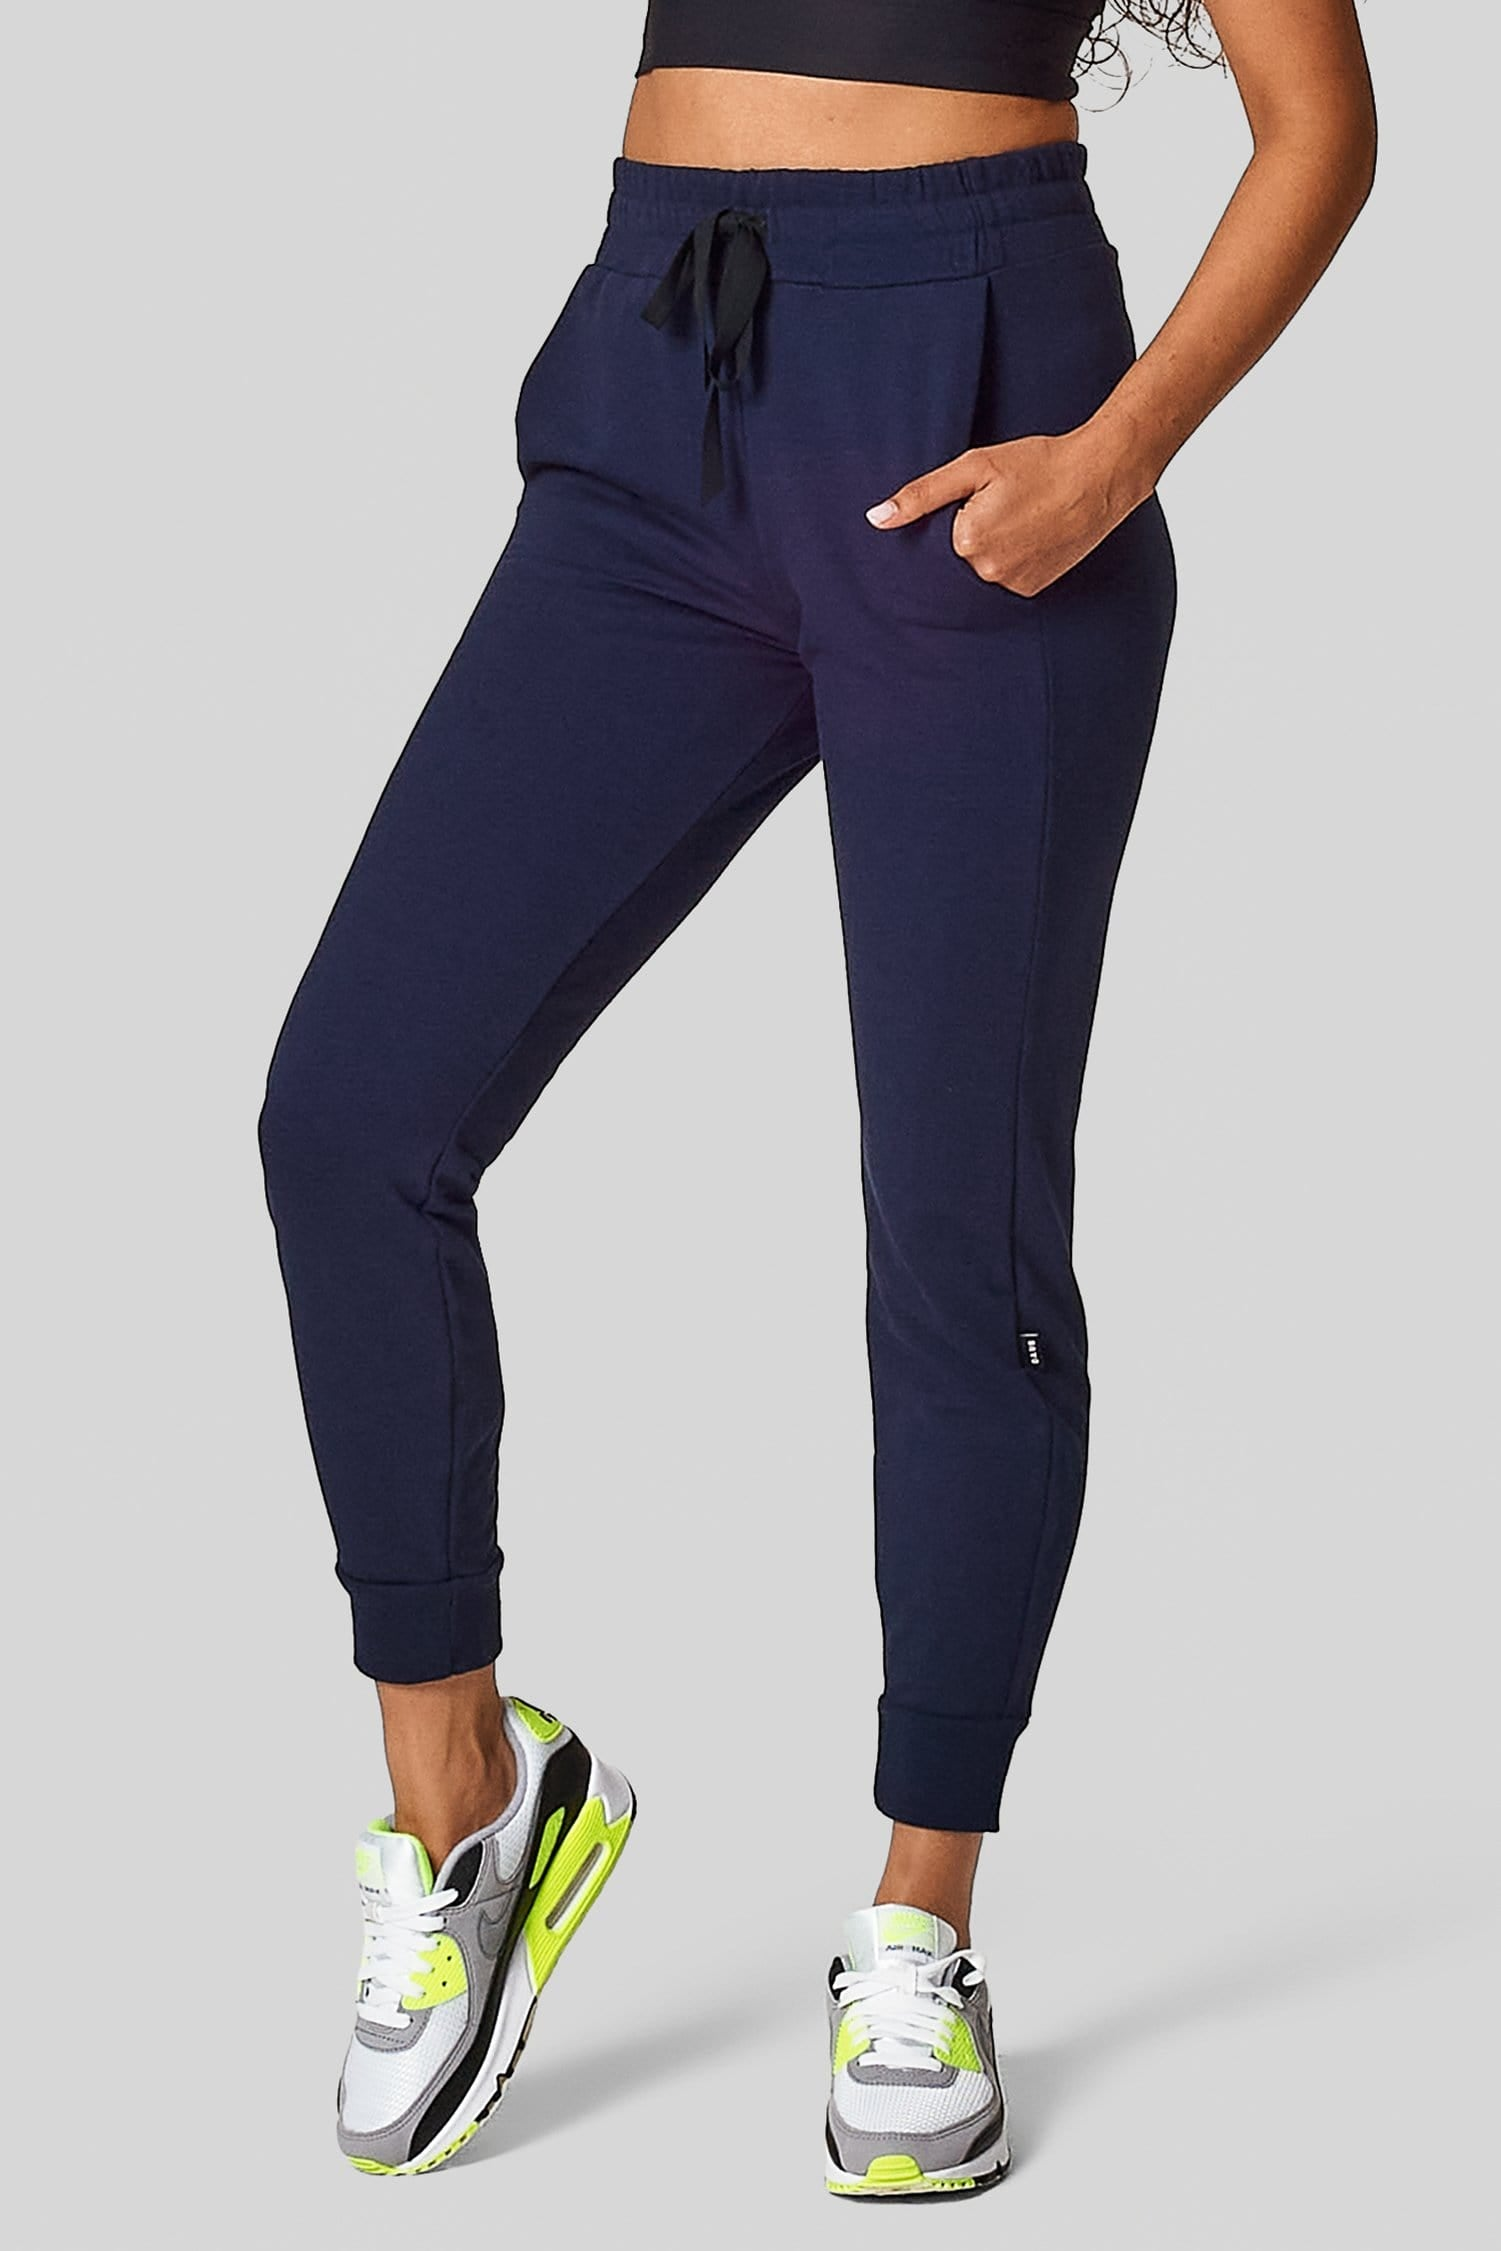 A woman wears a navy jogging pant with pockets and a drawstring.